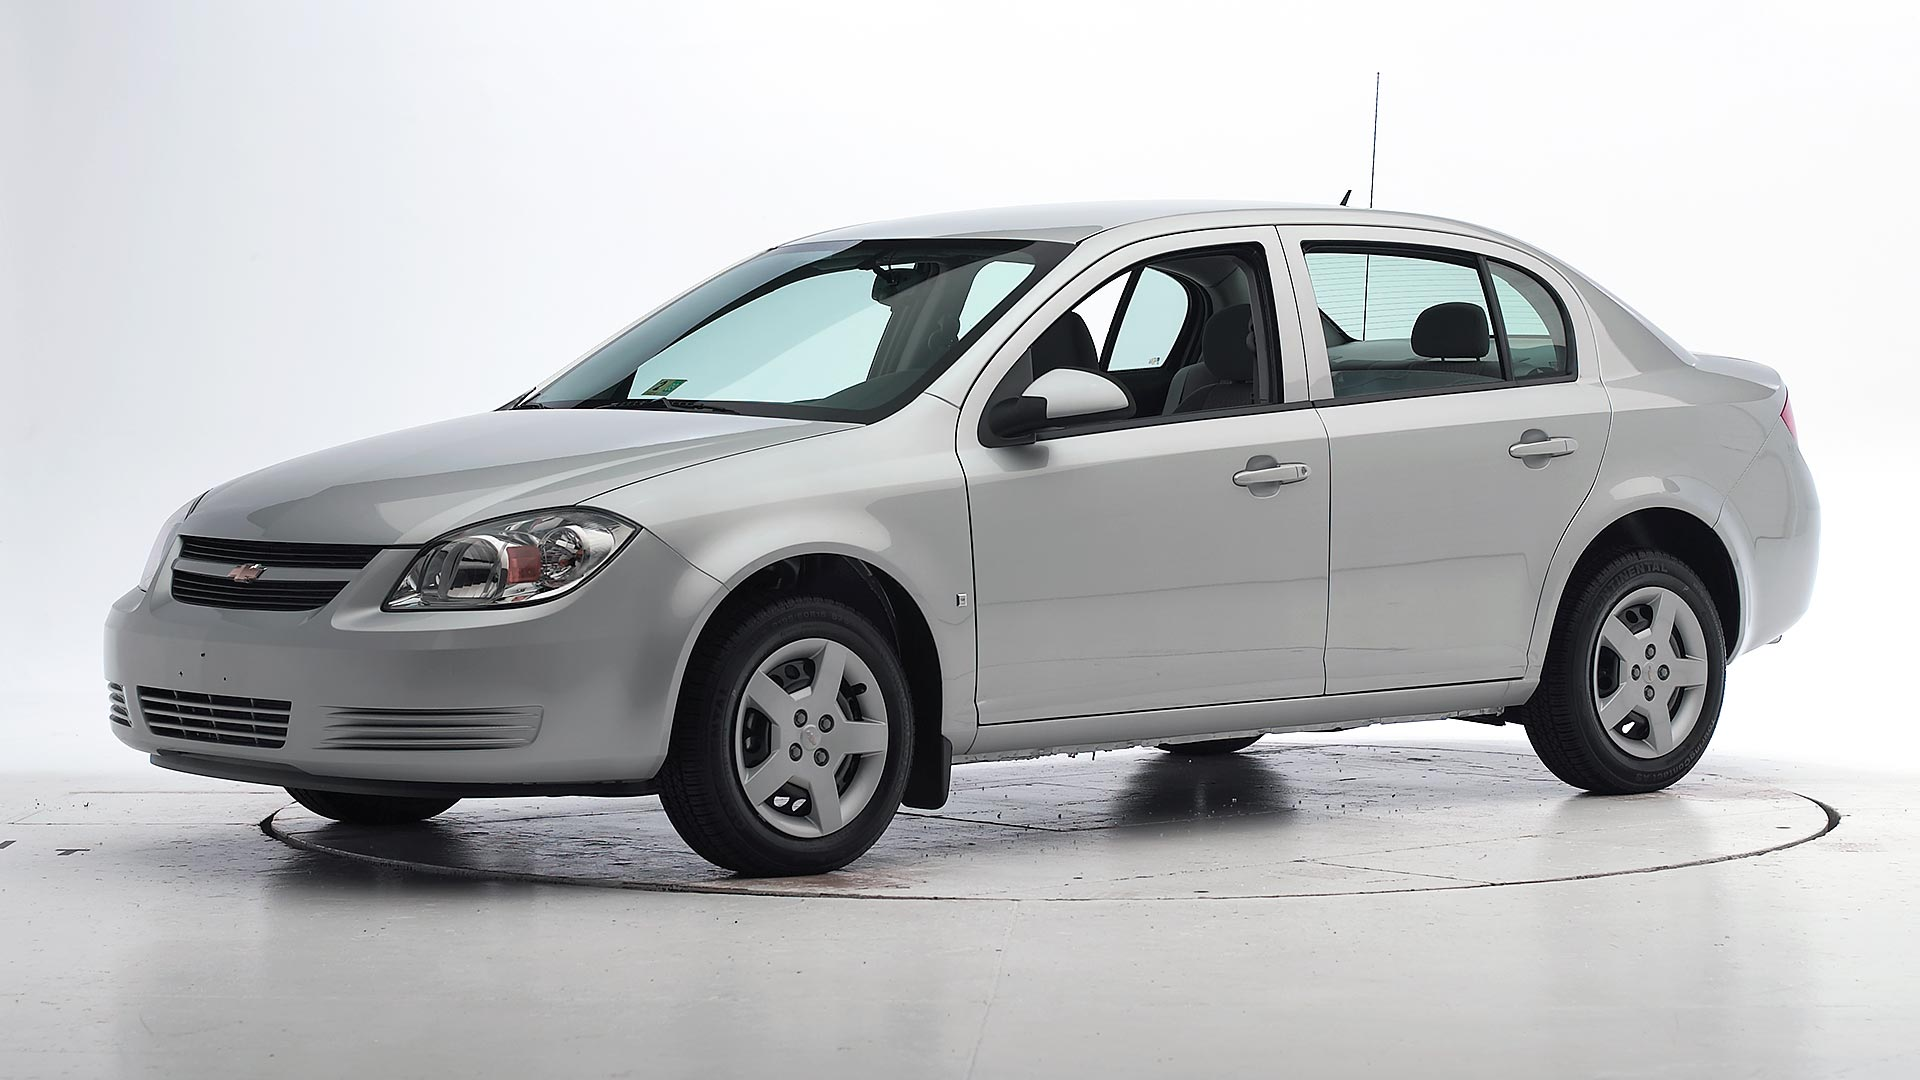 2010 Chevrolet Cobalt 4-door sedan